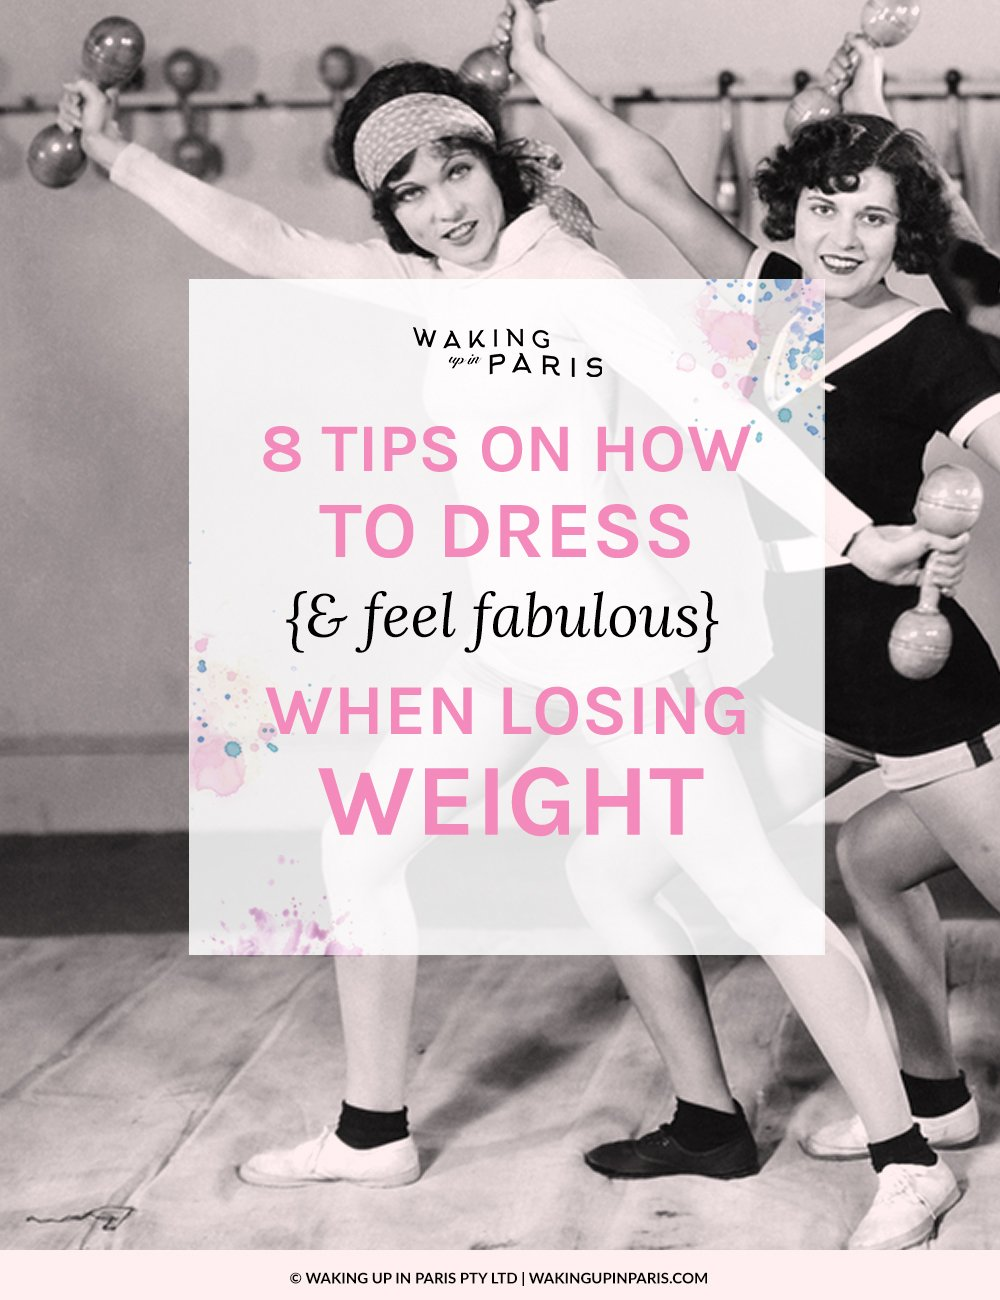 8 tips on how to dress when losing weight {& feel fabulous}